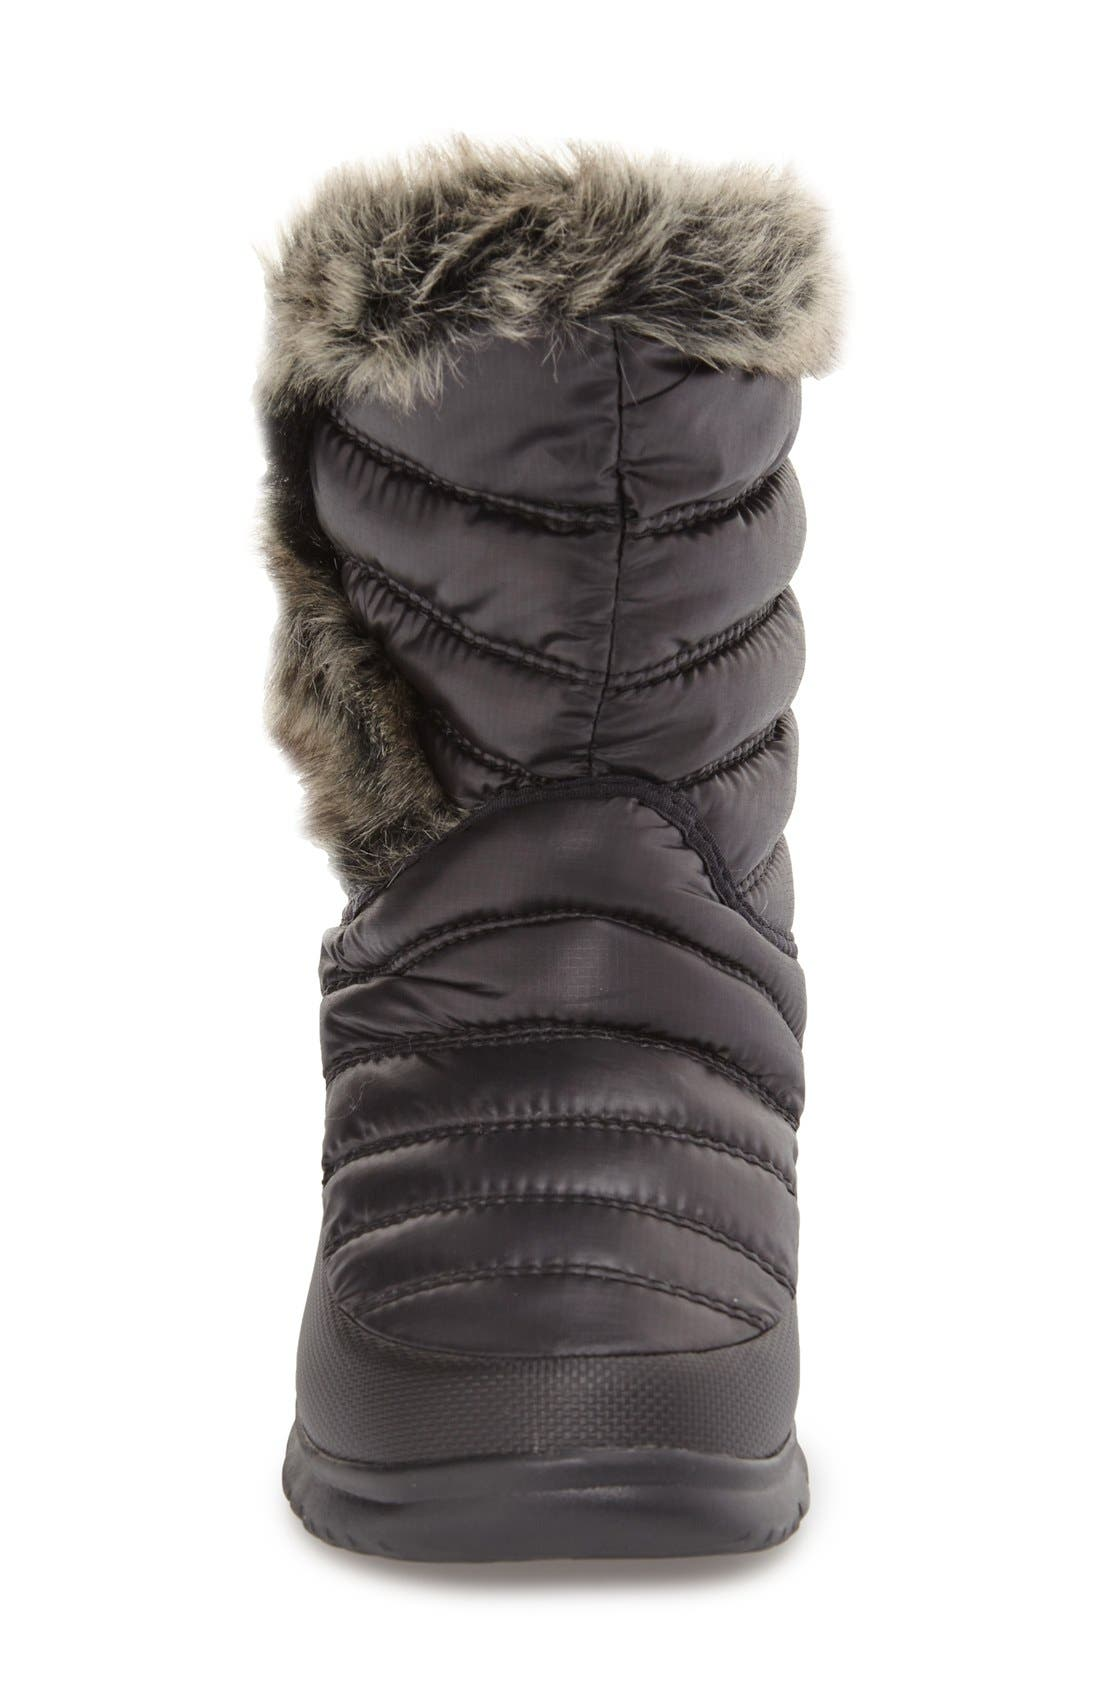 Microbaffle Waterproof ThermoBall<sup>®</sup> Insulated Winter Boot,                             Alternate thumbnail 3, color,                             Black/ Smoked Pearl Grey